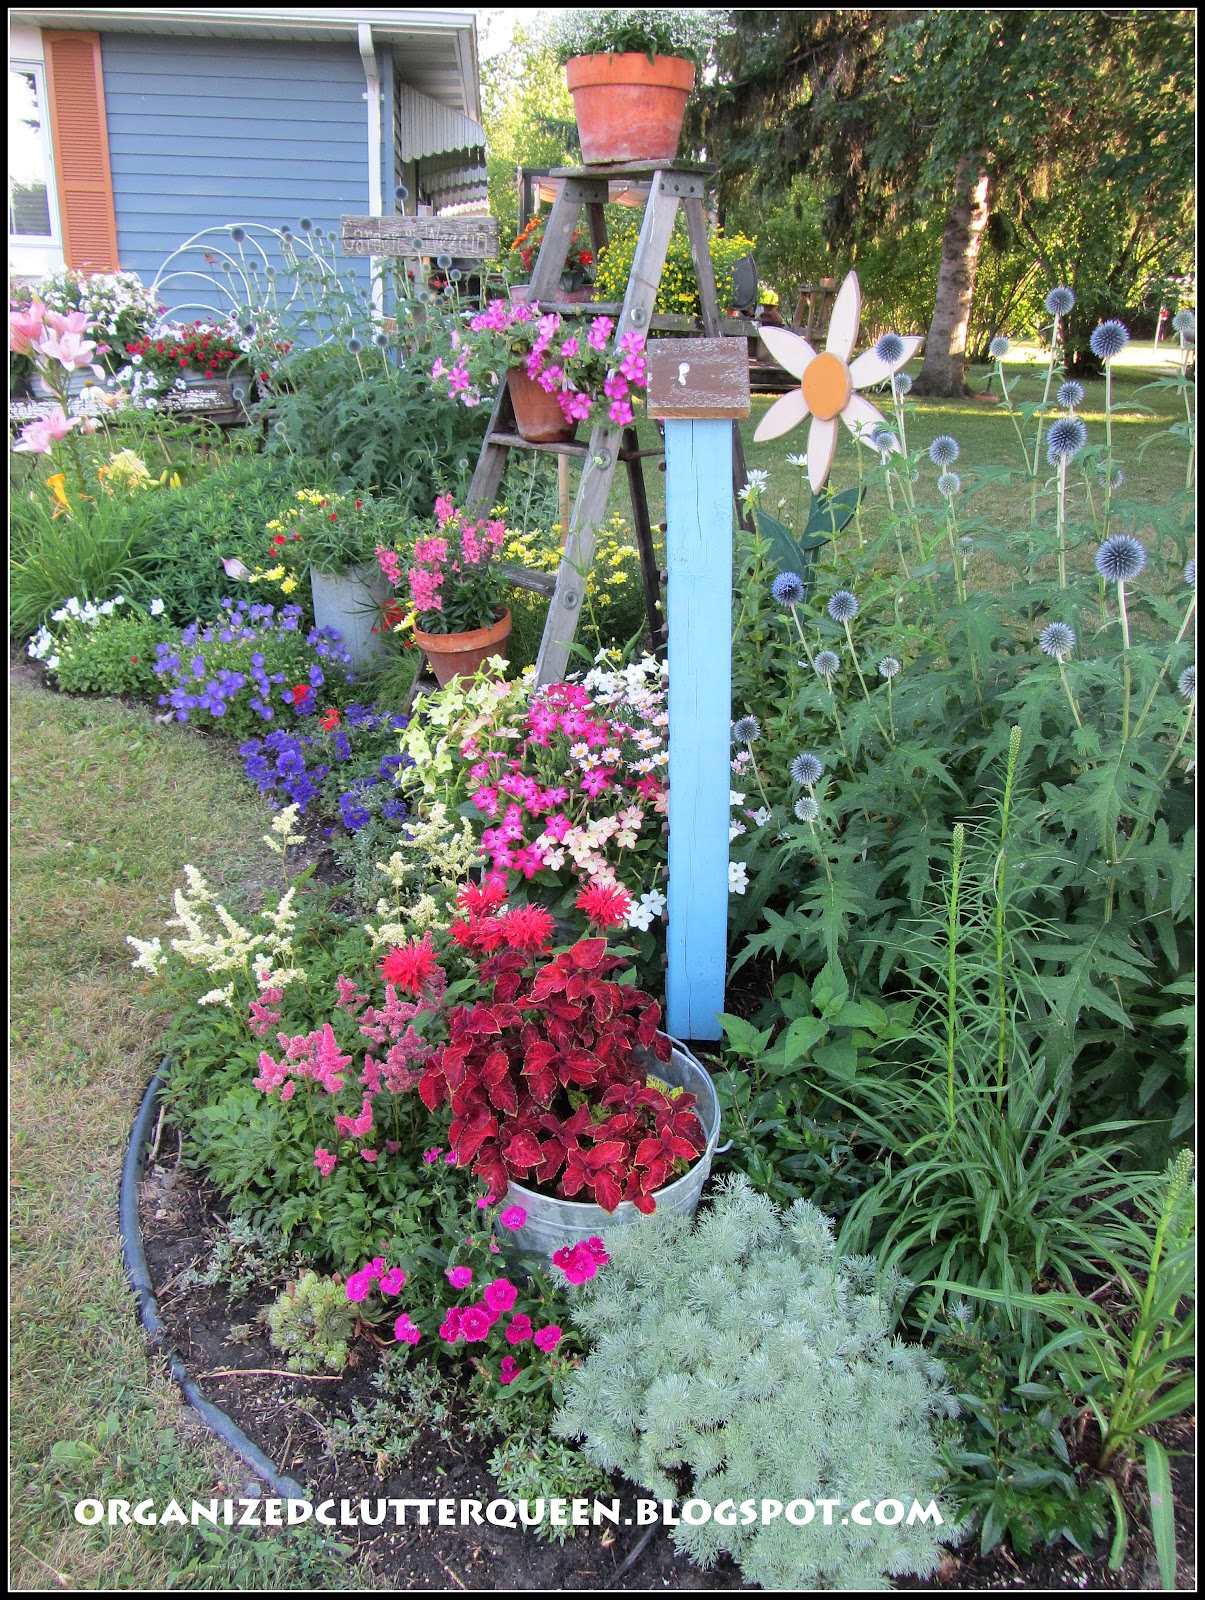 My Top Flower/Junk Garden Posts of 2012 | Organized Clutter